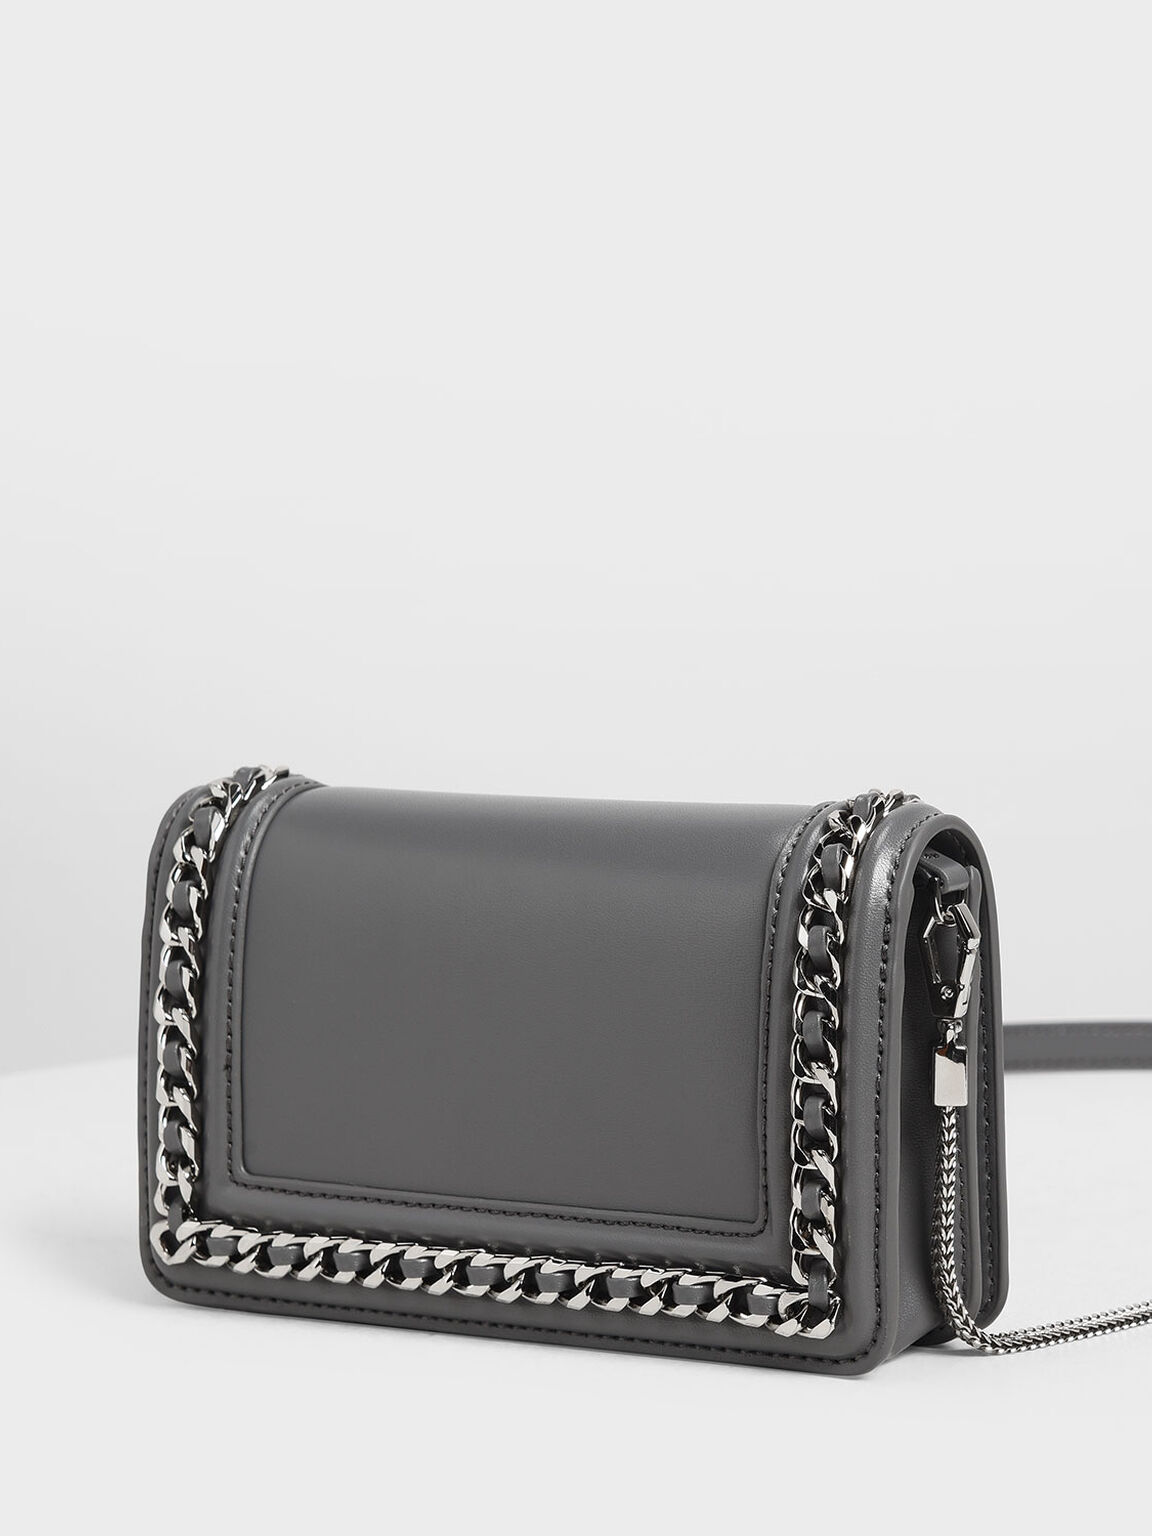 Chain Detail Clutch, Grey, hi-res